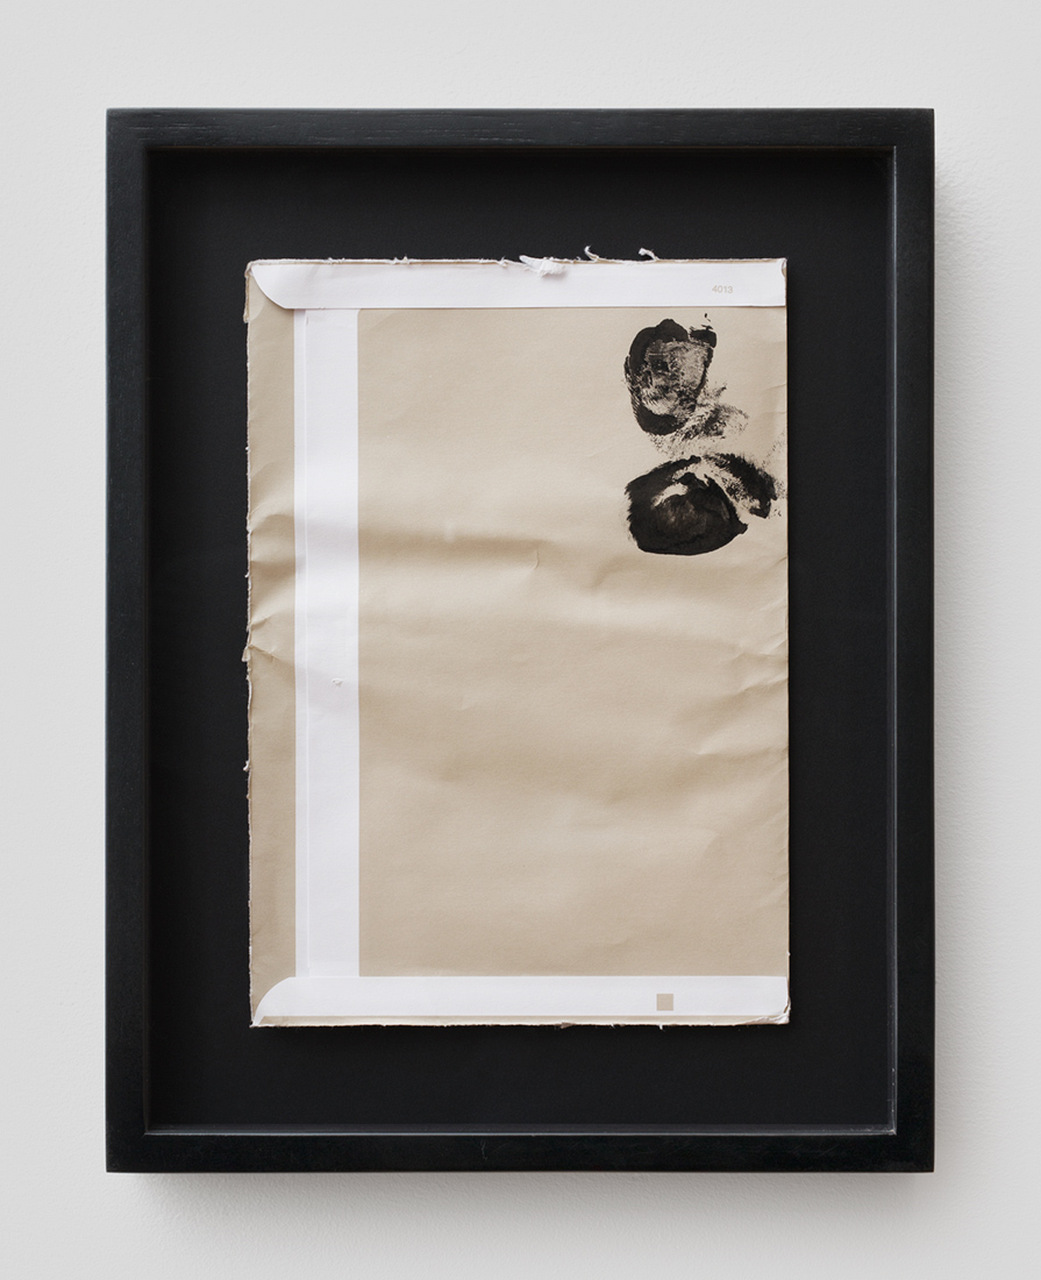 CB9881_MSC_Joao Carvalho Correspondence 2015_ink on paper_ 12 1_4 x 9 1_2 in